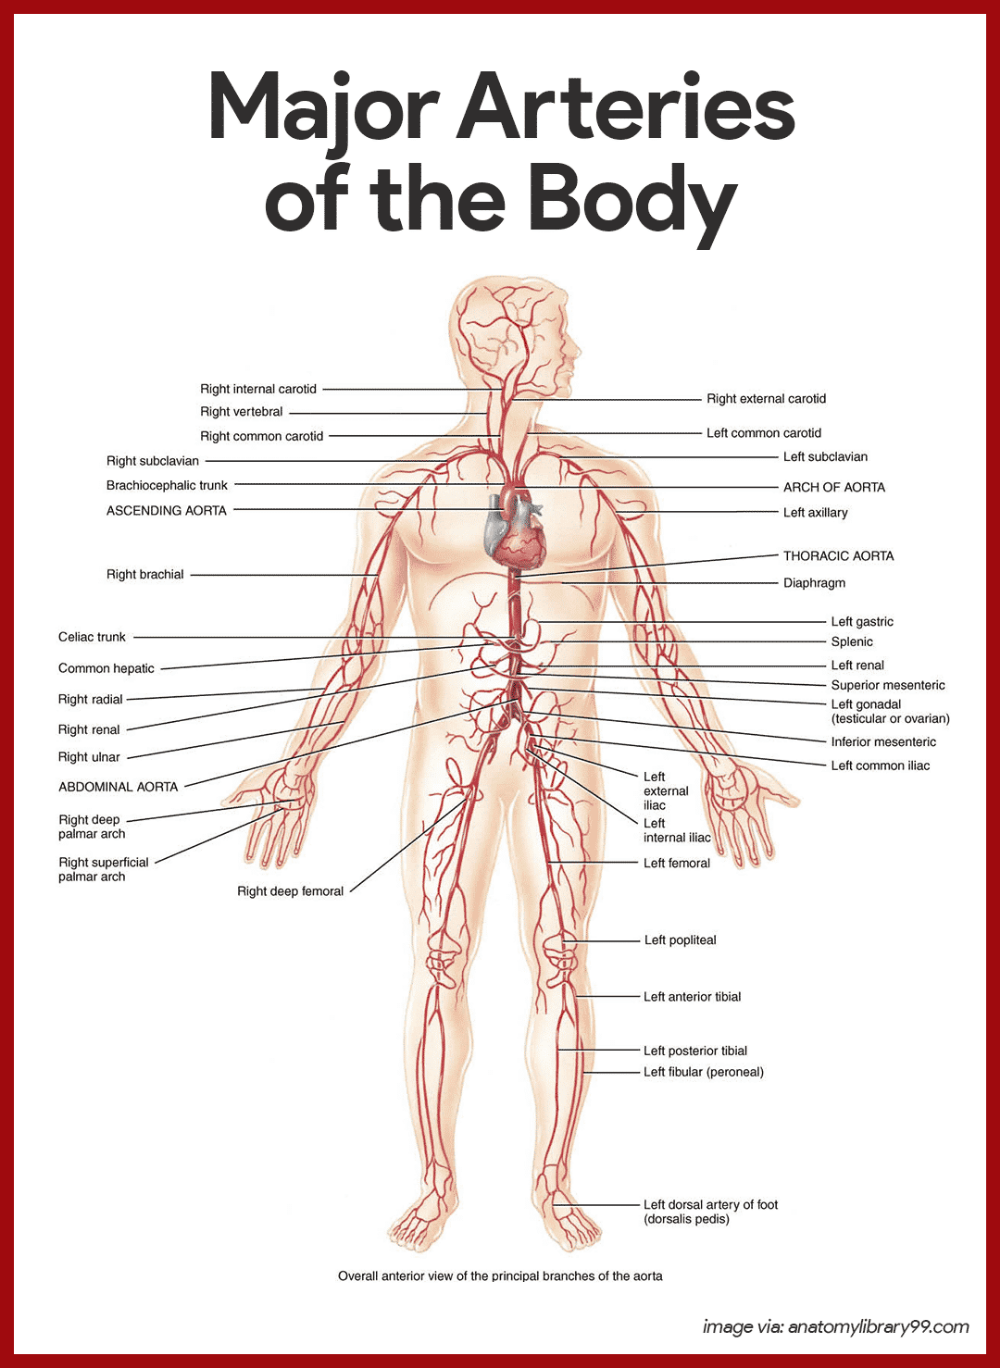 Cardiovascular System Anatomy and Physiology | Nursing